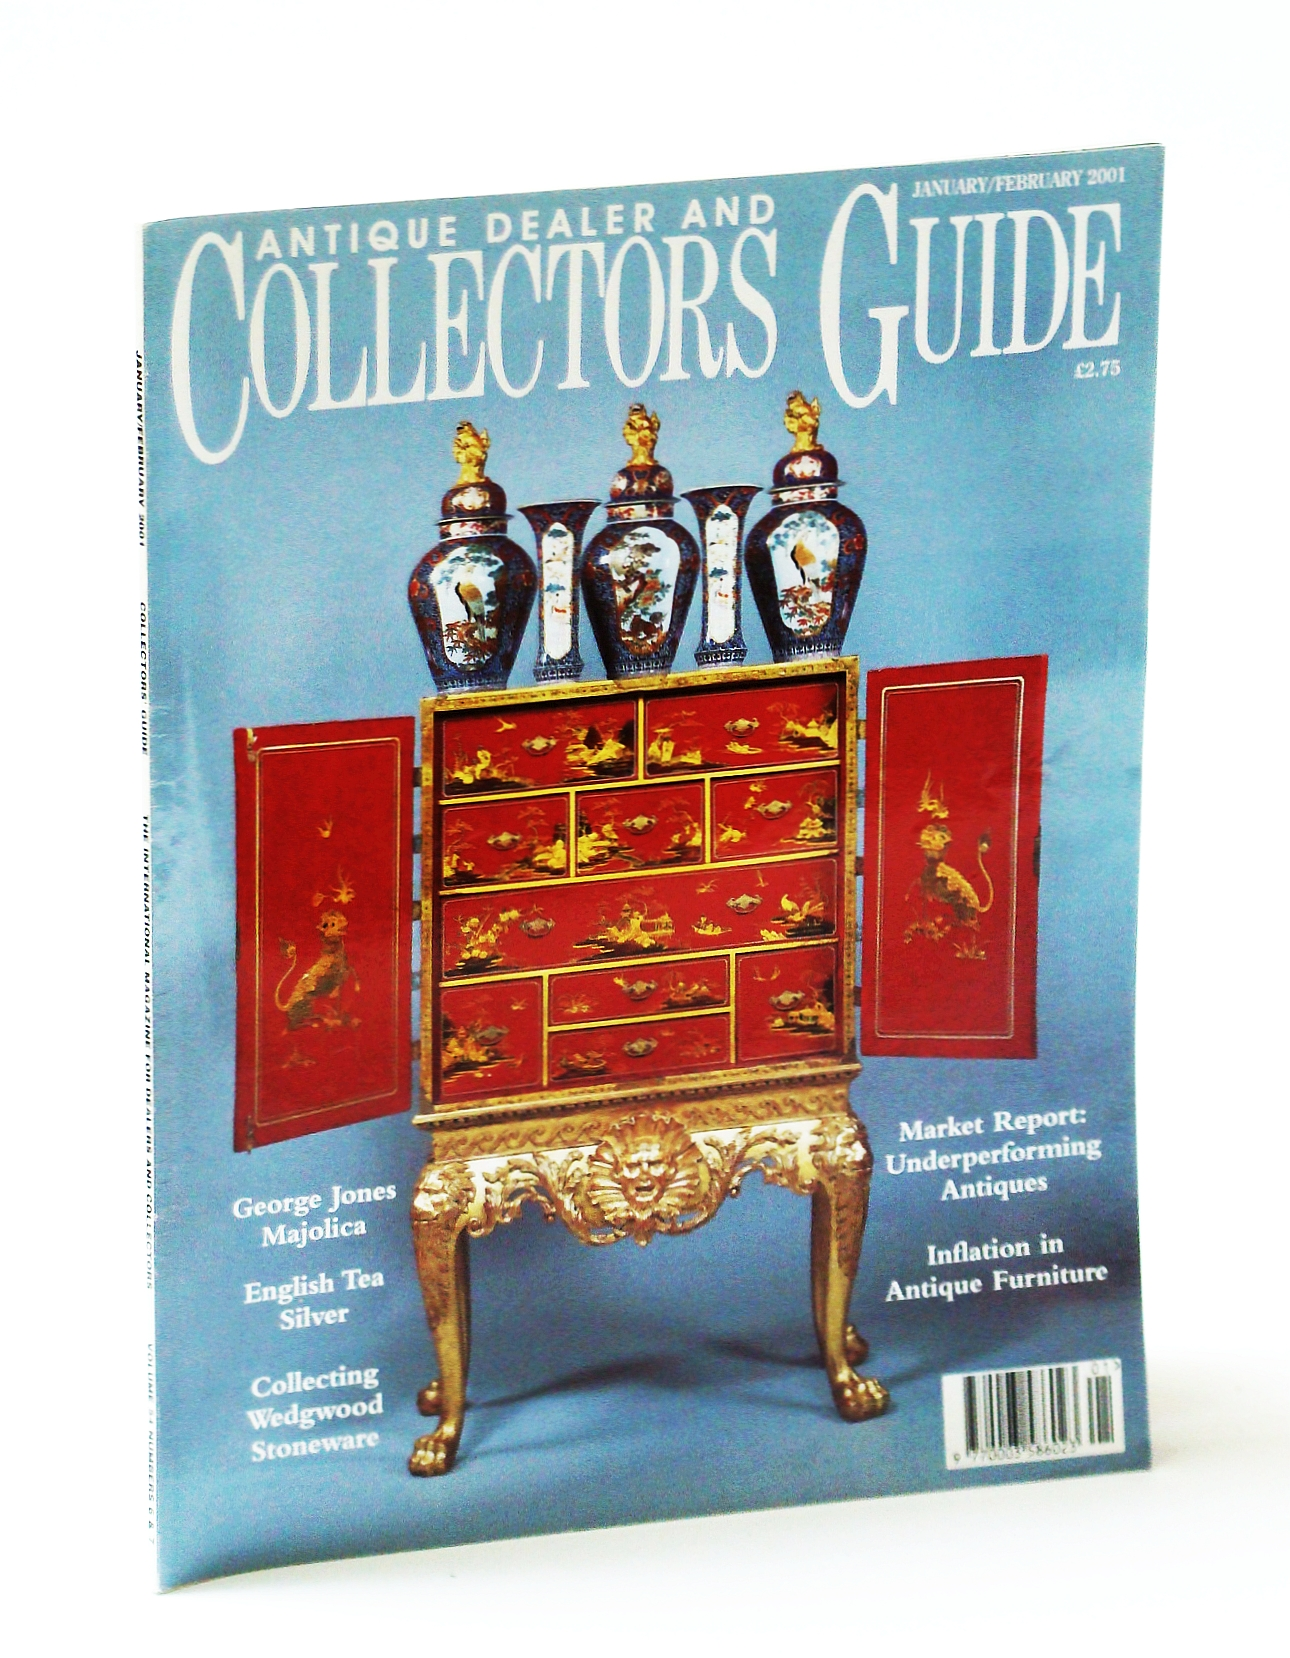 Collecting Antique Furniture Style Guide Throughout Image For Antique Dealer And Collectors Guide Magazine January February jan